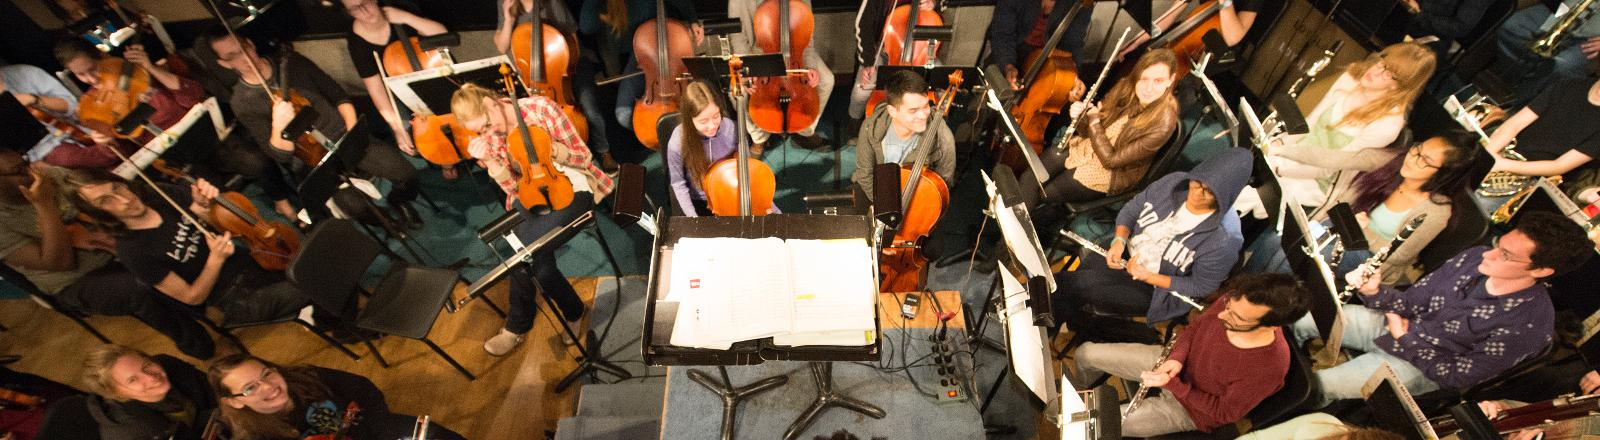 The Loyola School of Music Symphony Orchestra rehearses in the pit of Roussel Hall.